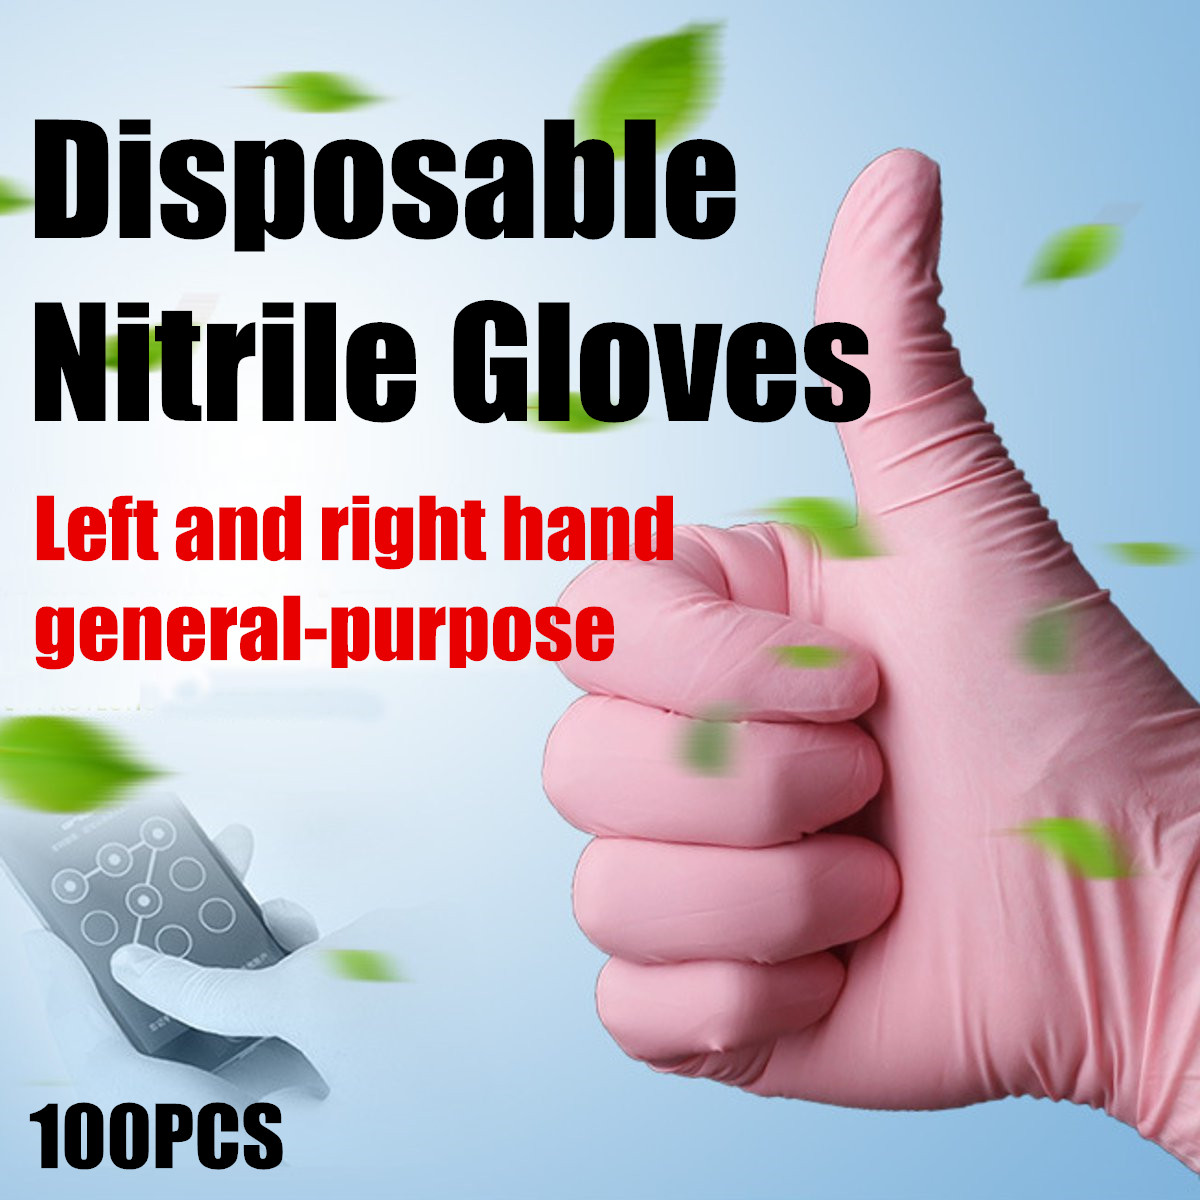 100Pcs S/M/L Disposable Nitrile Gloves Rubber Latex Cleaning Mechanic Medical Glove